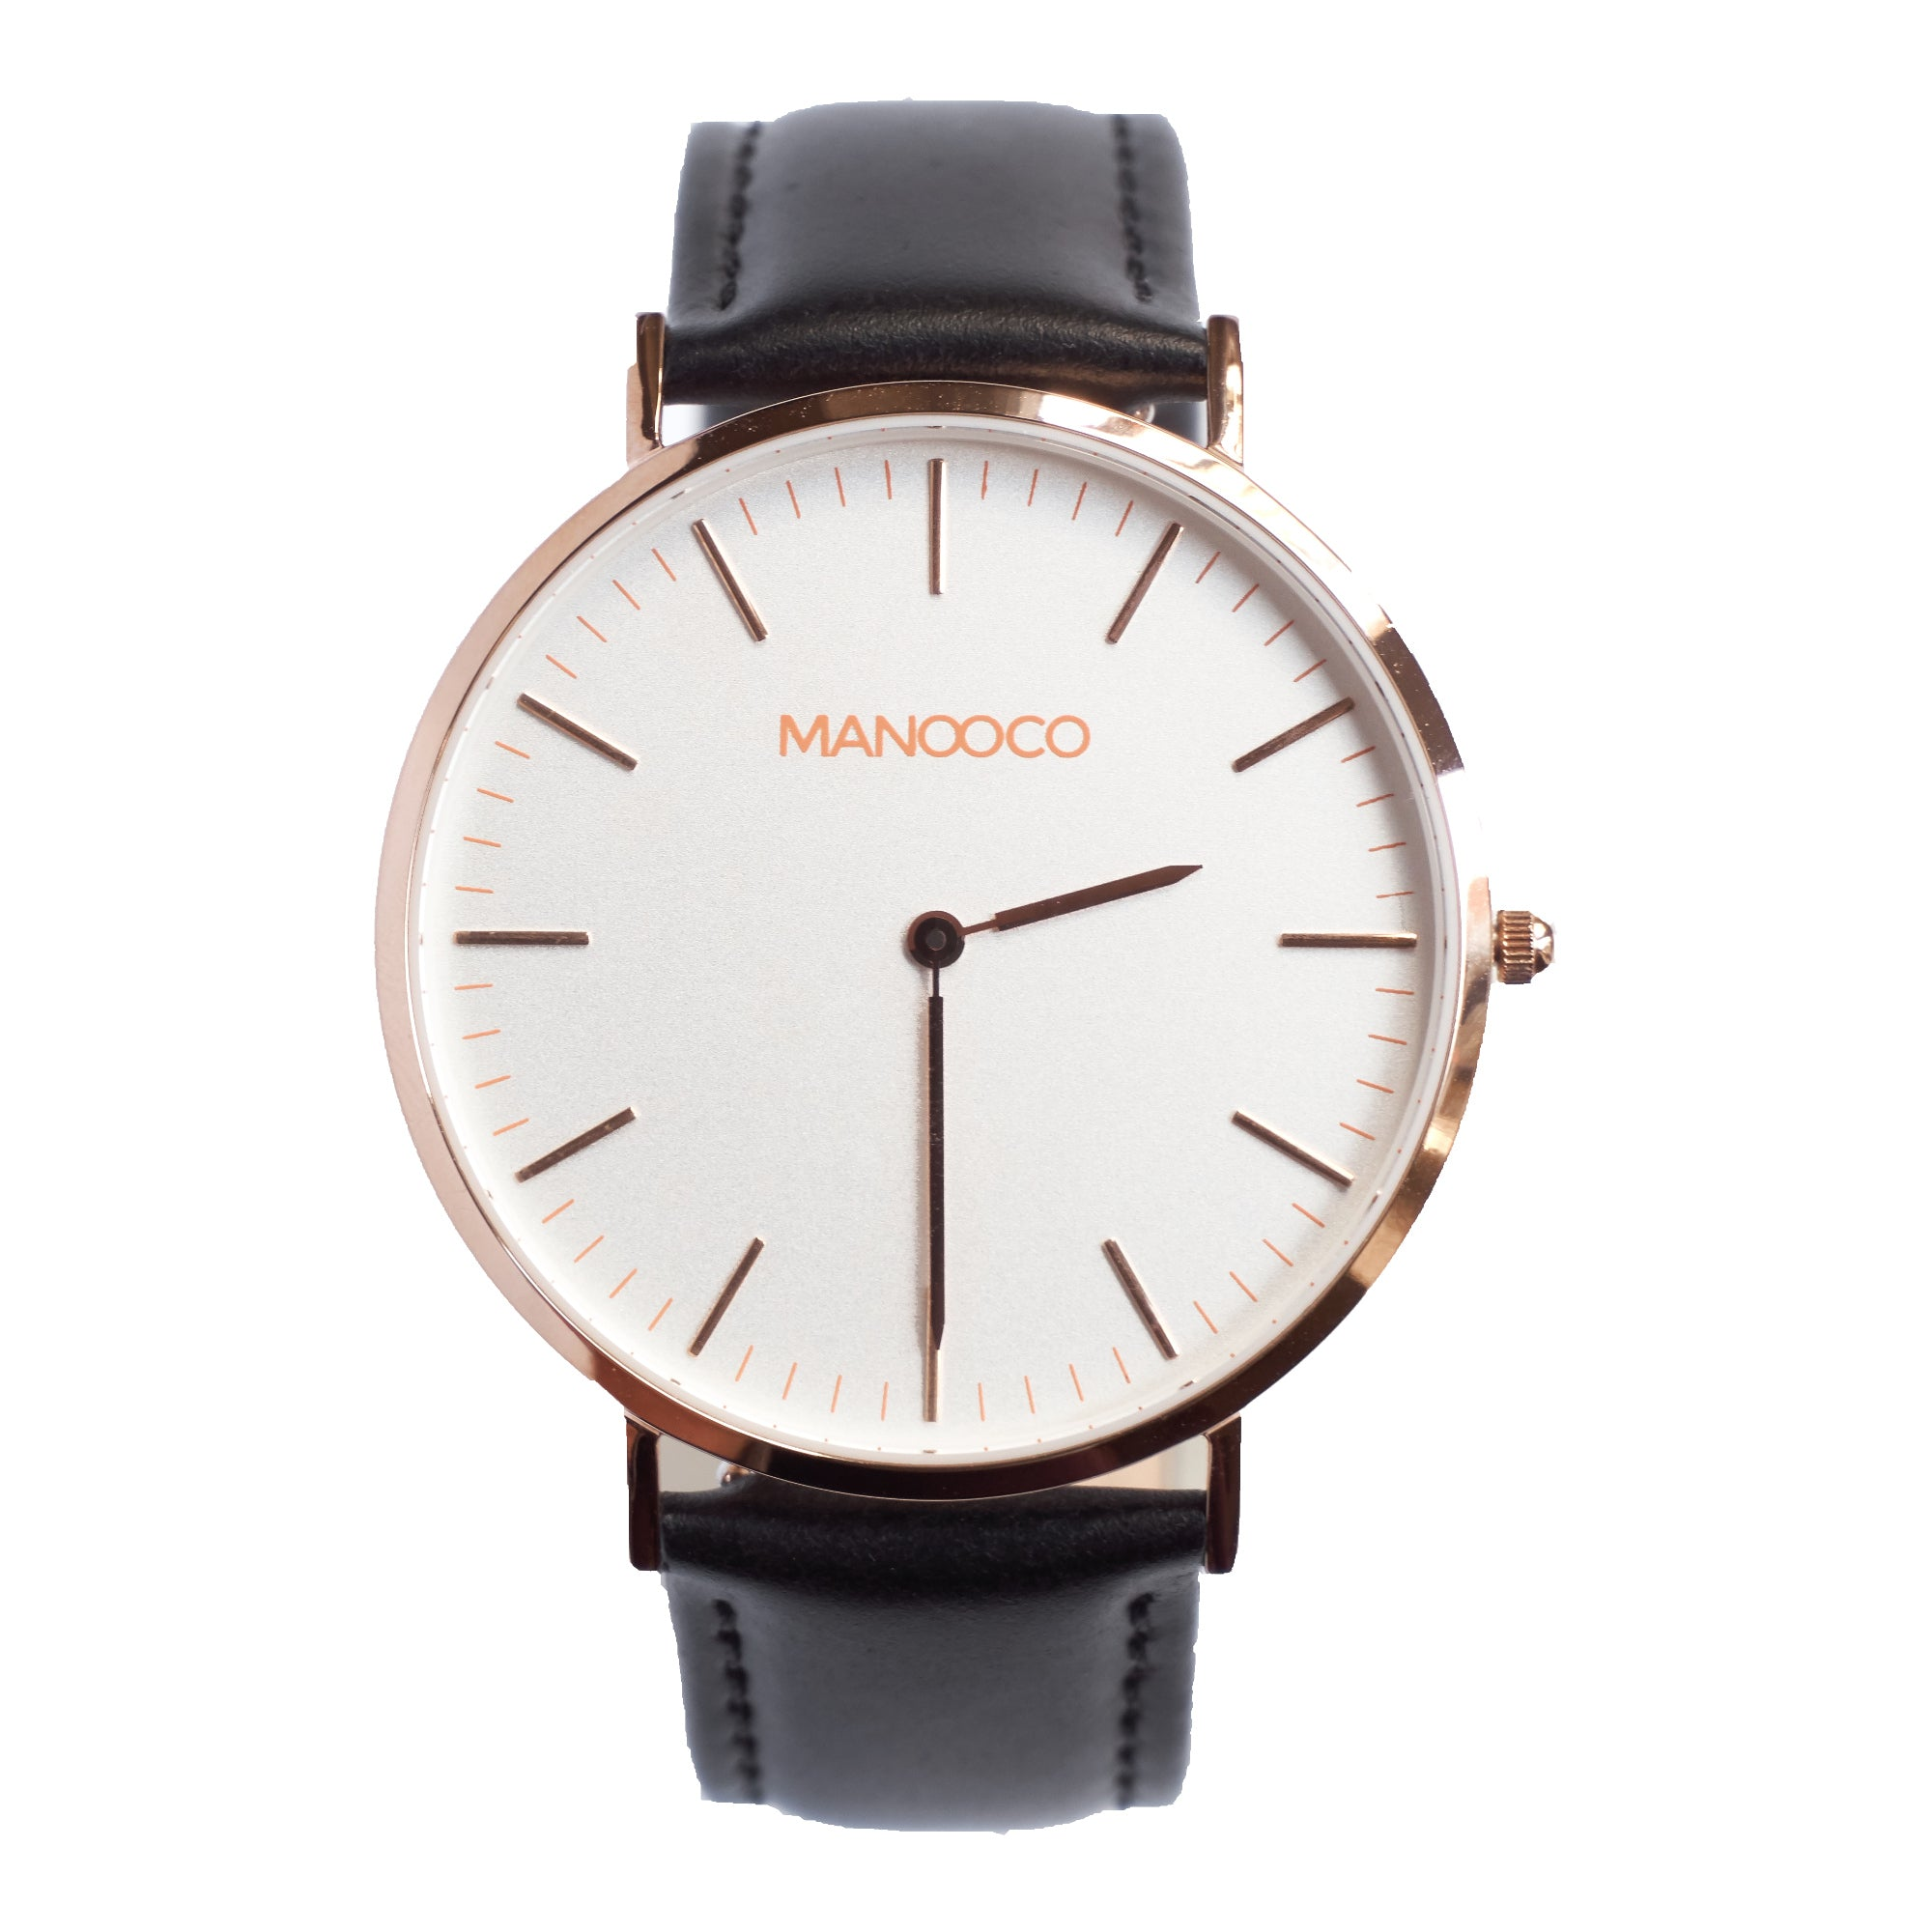 Zephyr Rose Gold / Black Glossy Leather - Watch - MANOOCO - Watch - manooco